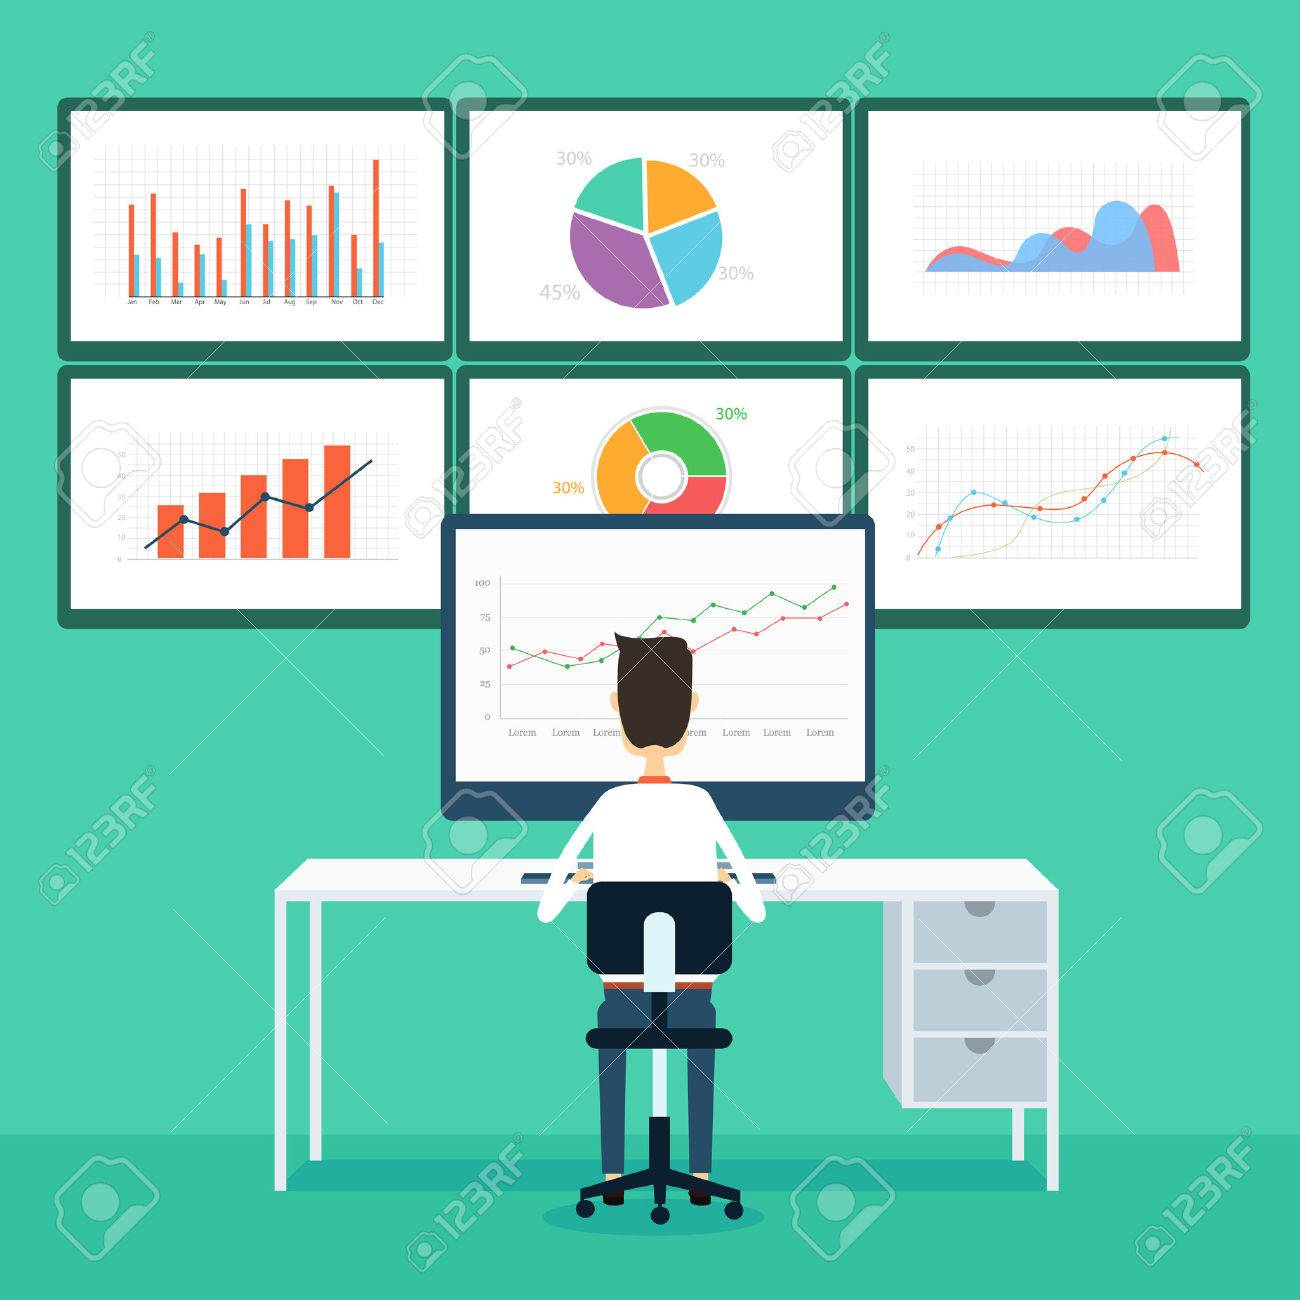 business people analytics business graph and seo on monitor - 32357698